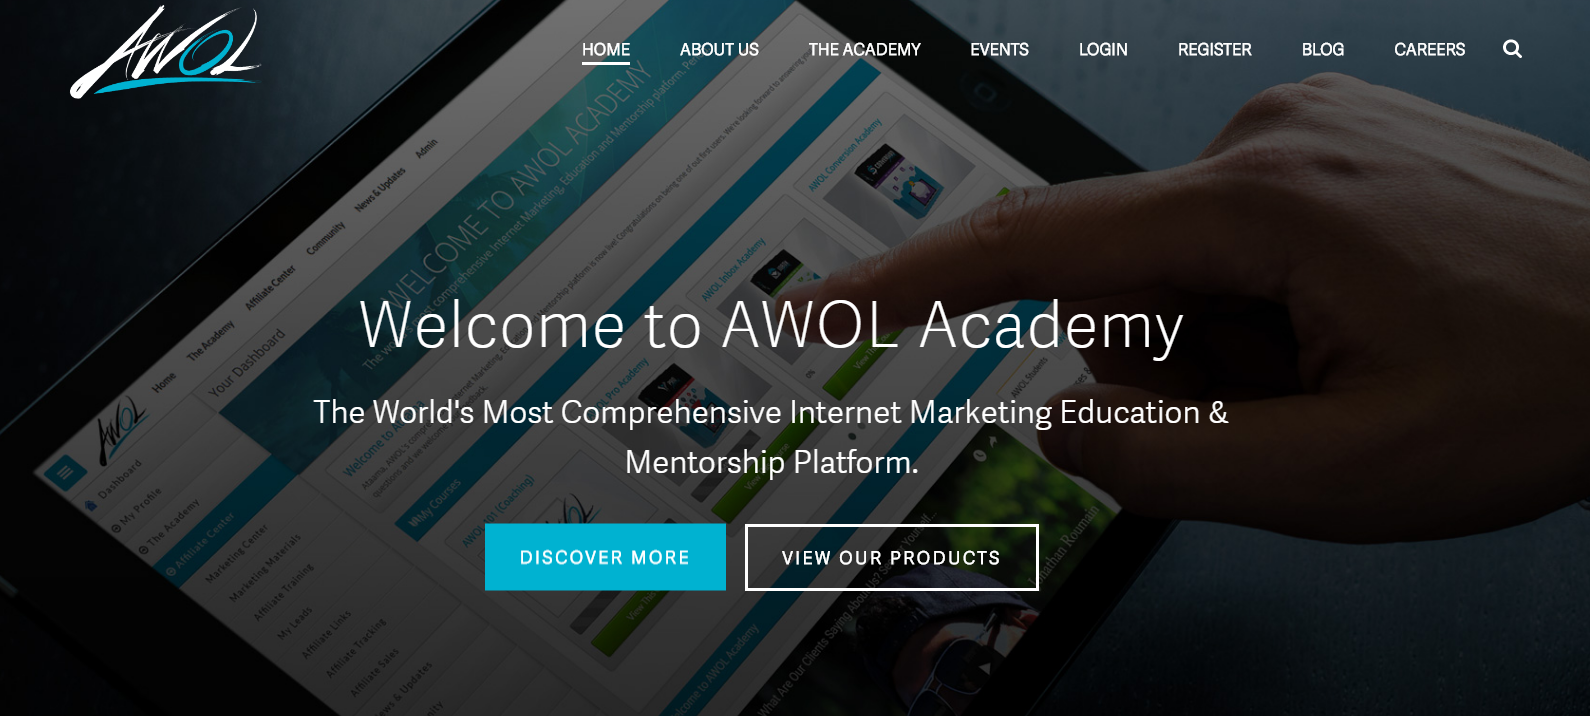 awol academy frontpage